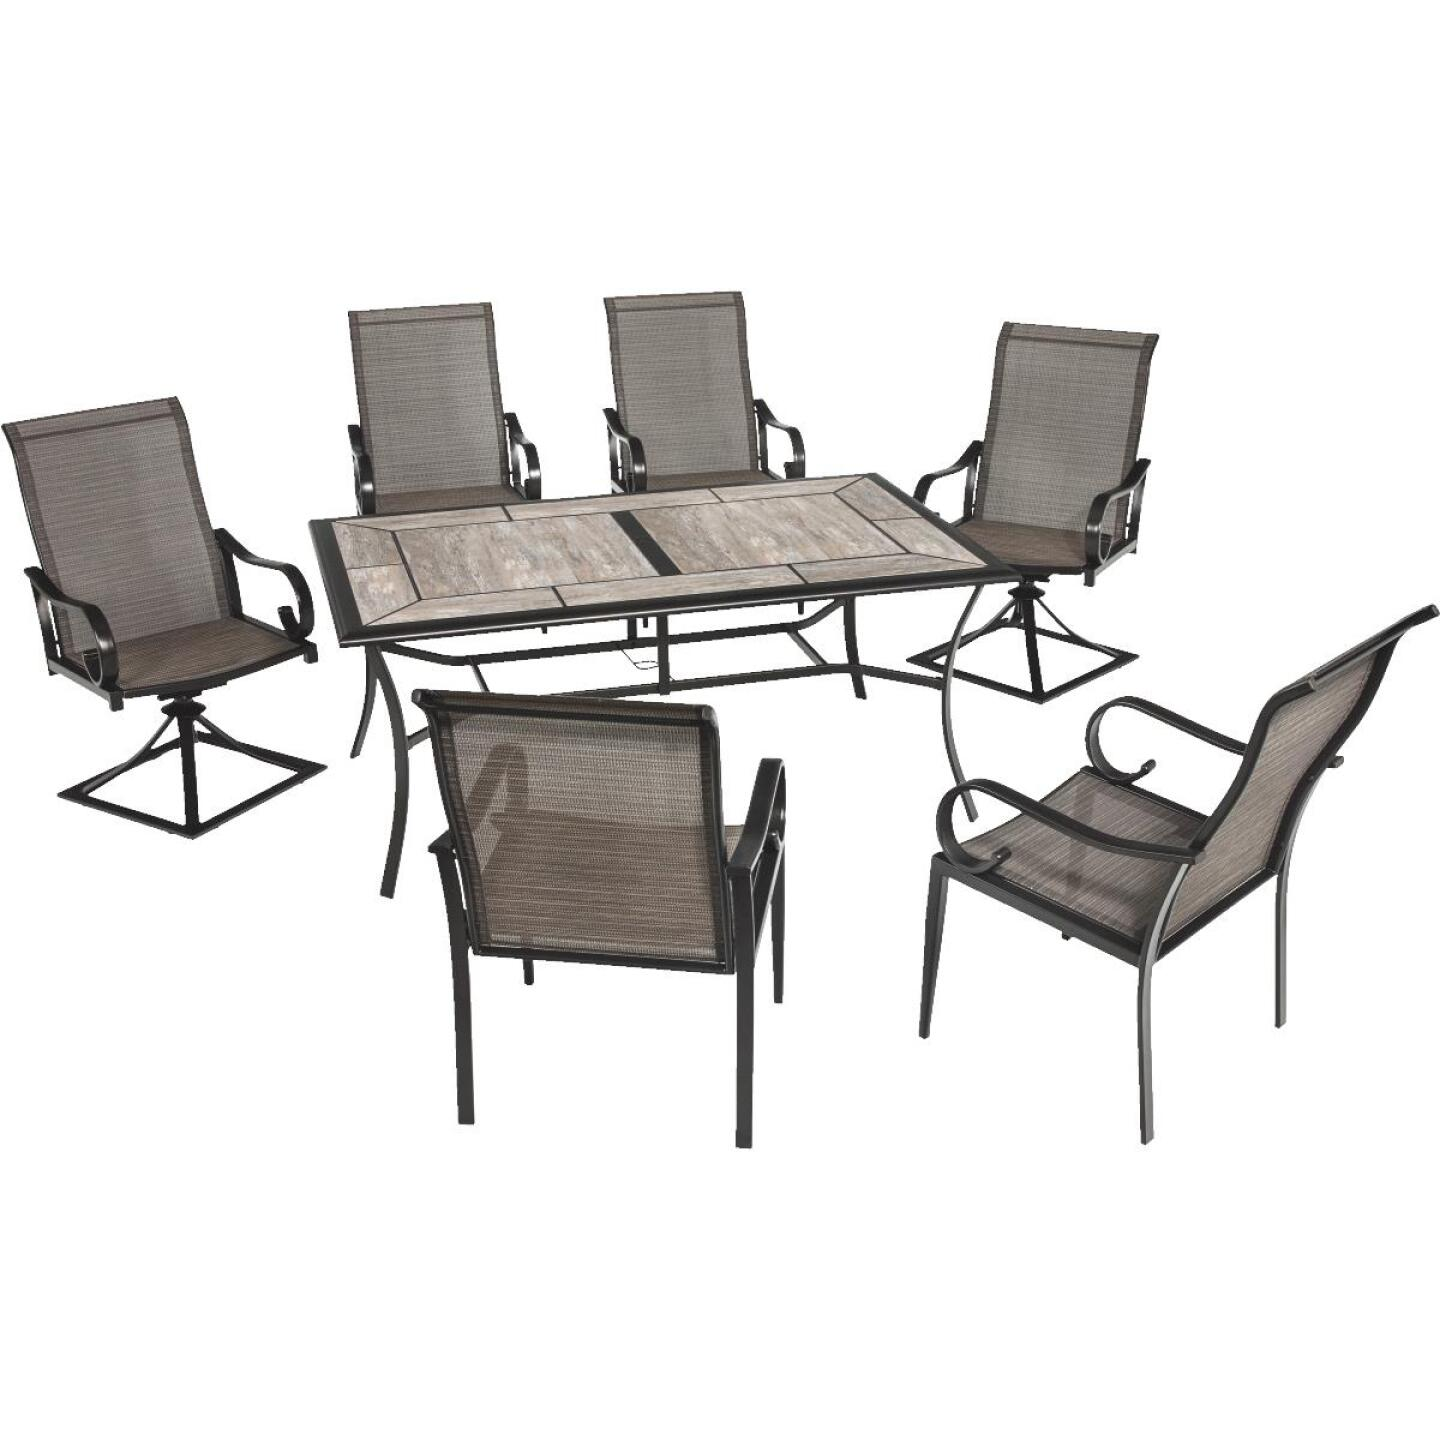 Outdoor Expressions Berkshire 7-Piece Dining Set Image 263